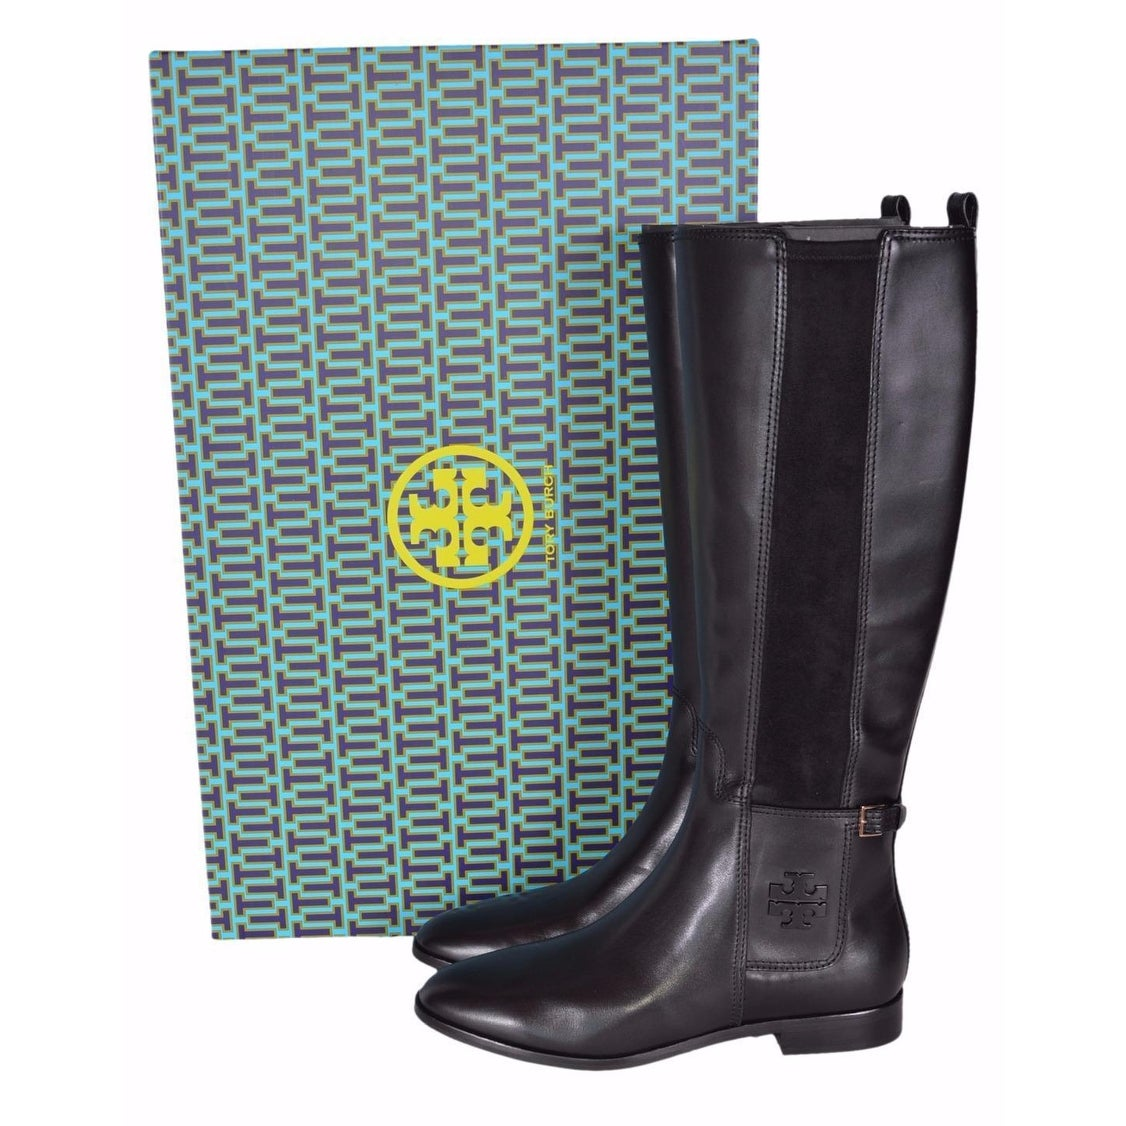 df0cfe2d3347e Shop Tory Burch Women s Black Leather Wyatt Knee High T Logo Riding Boots 8  - On Sale - Free Shipping Today - Overstock - 19469375